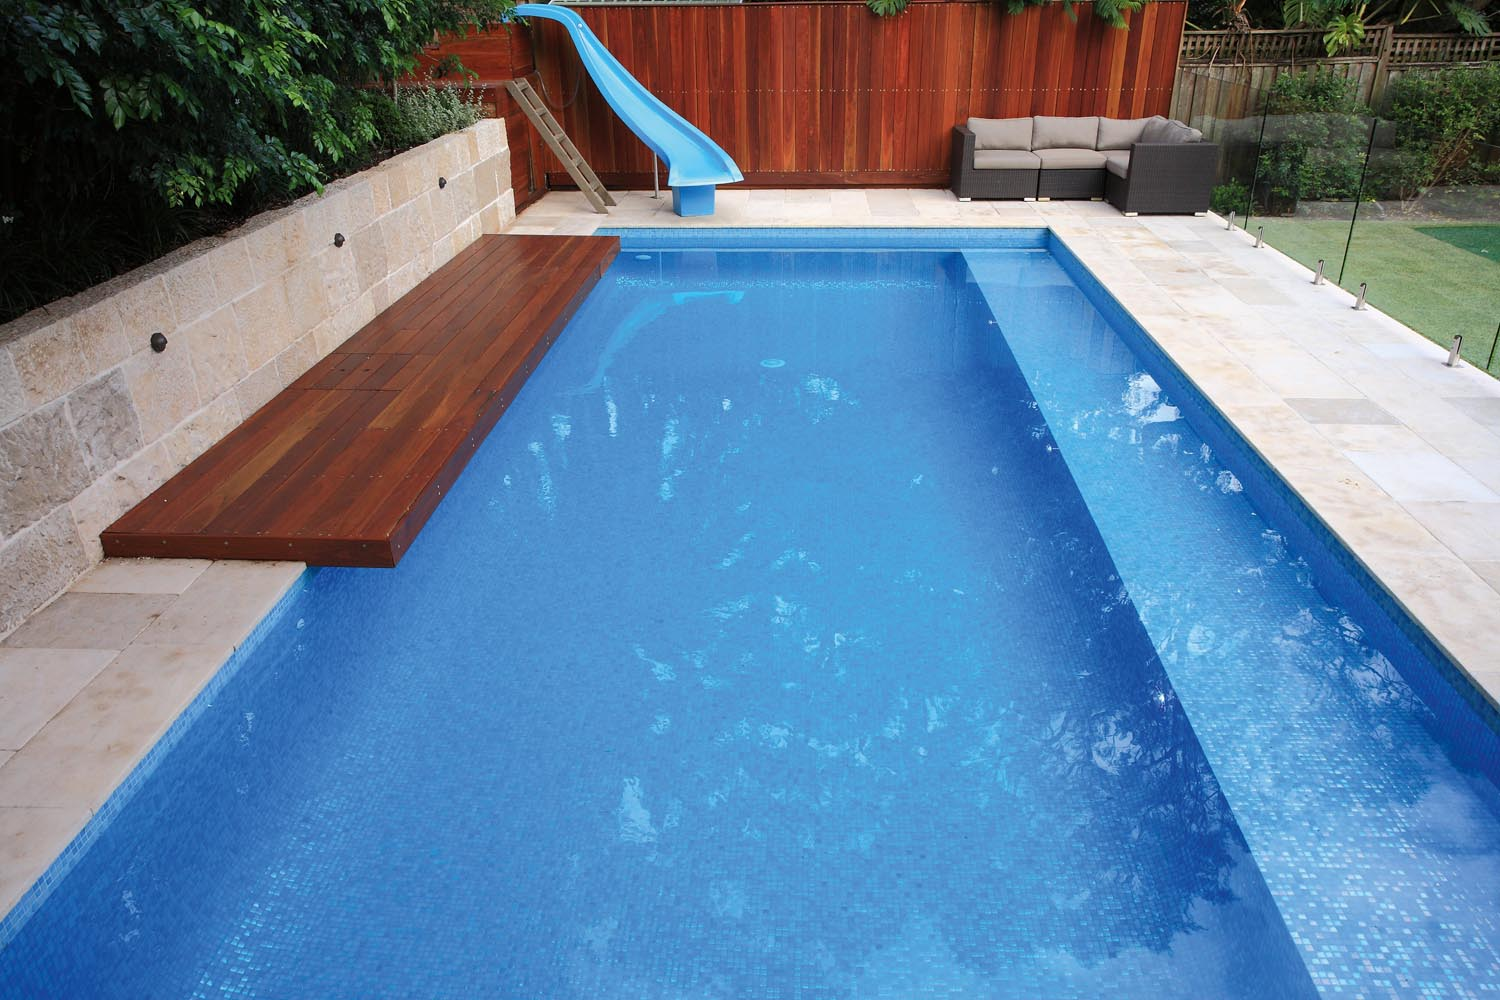 A blue pool with a wooden bench and a water slide